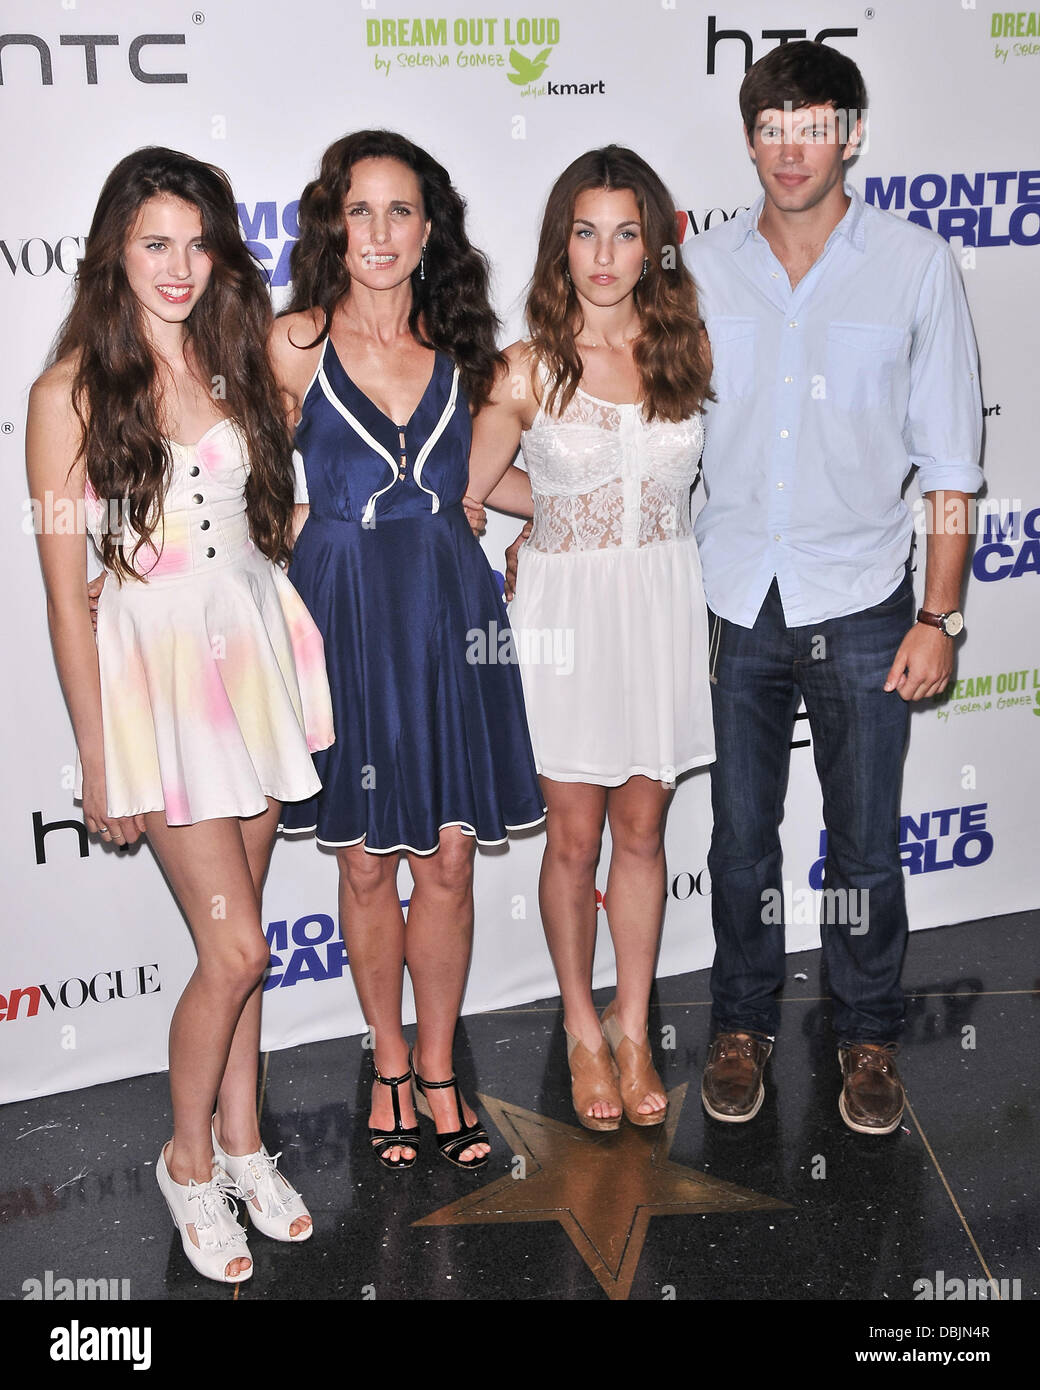 Andie Macdowell Rainey Qualley Sarah Qualley Justin